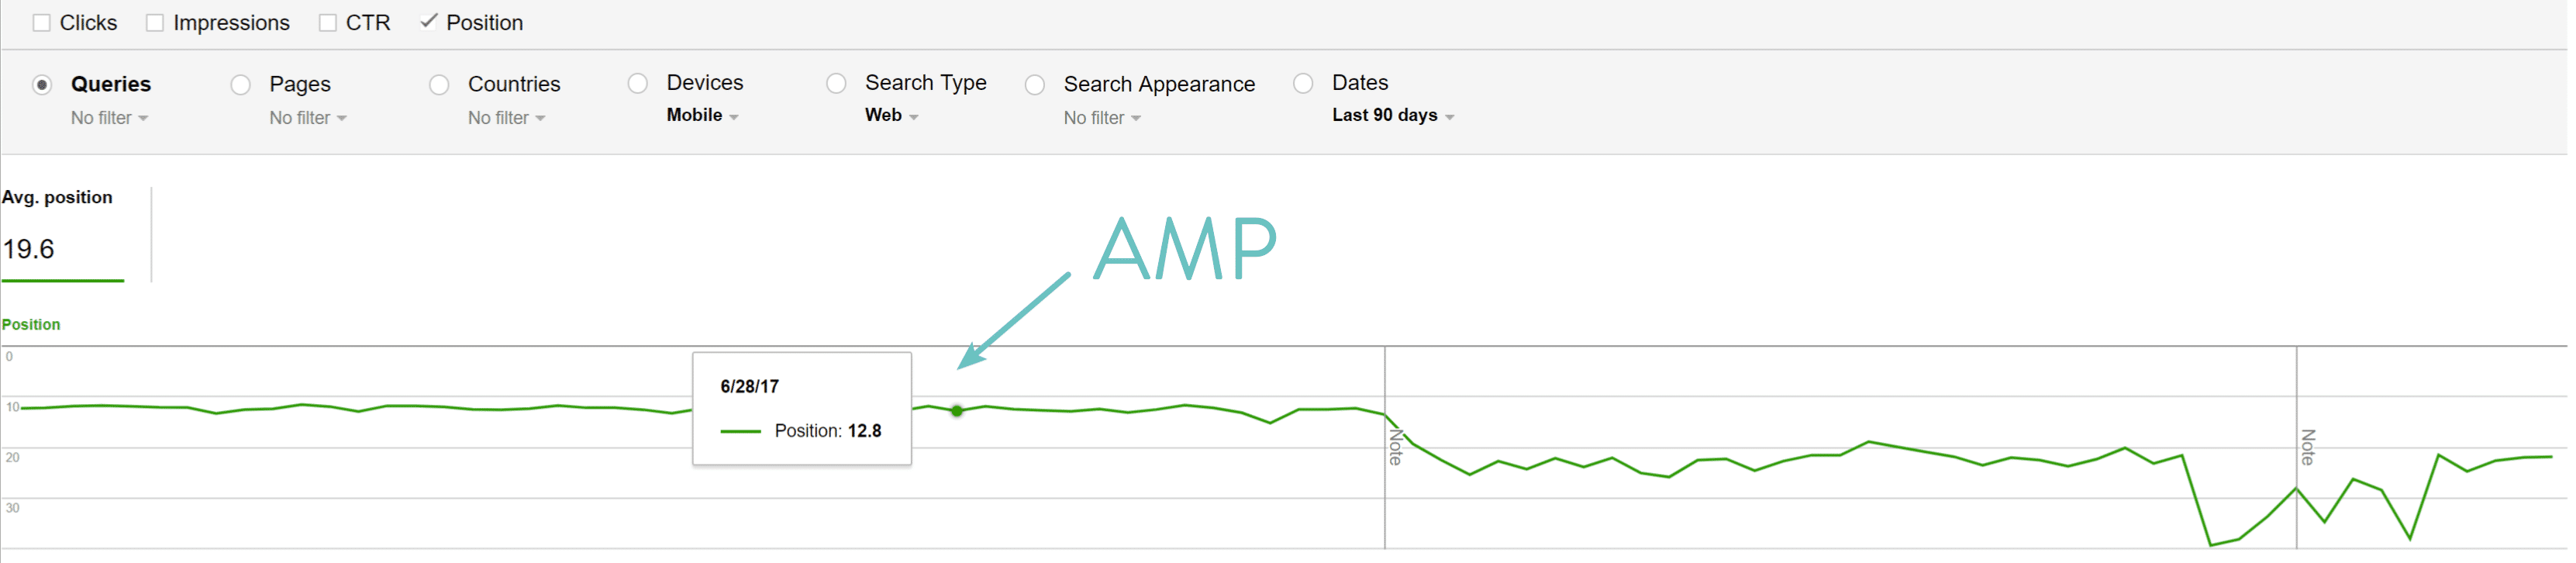 Google AMP positioner data